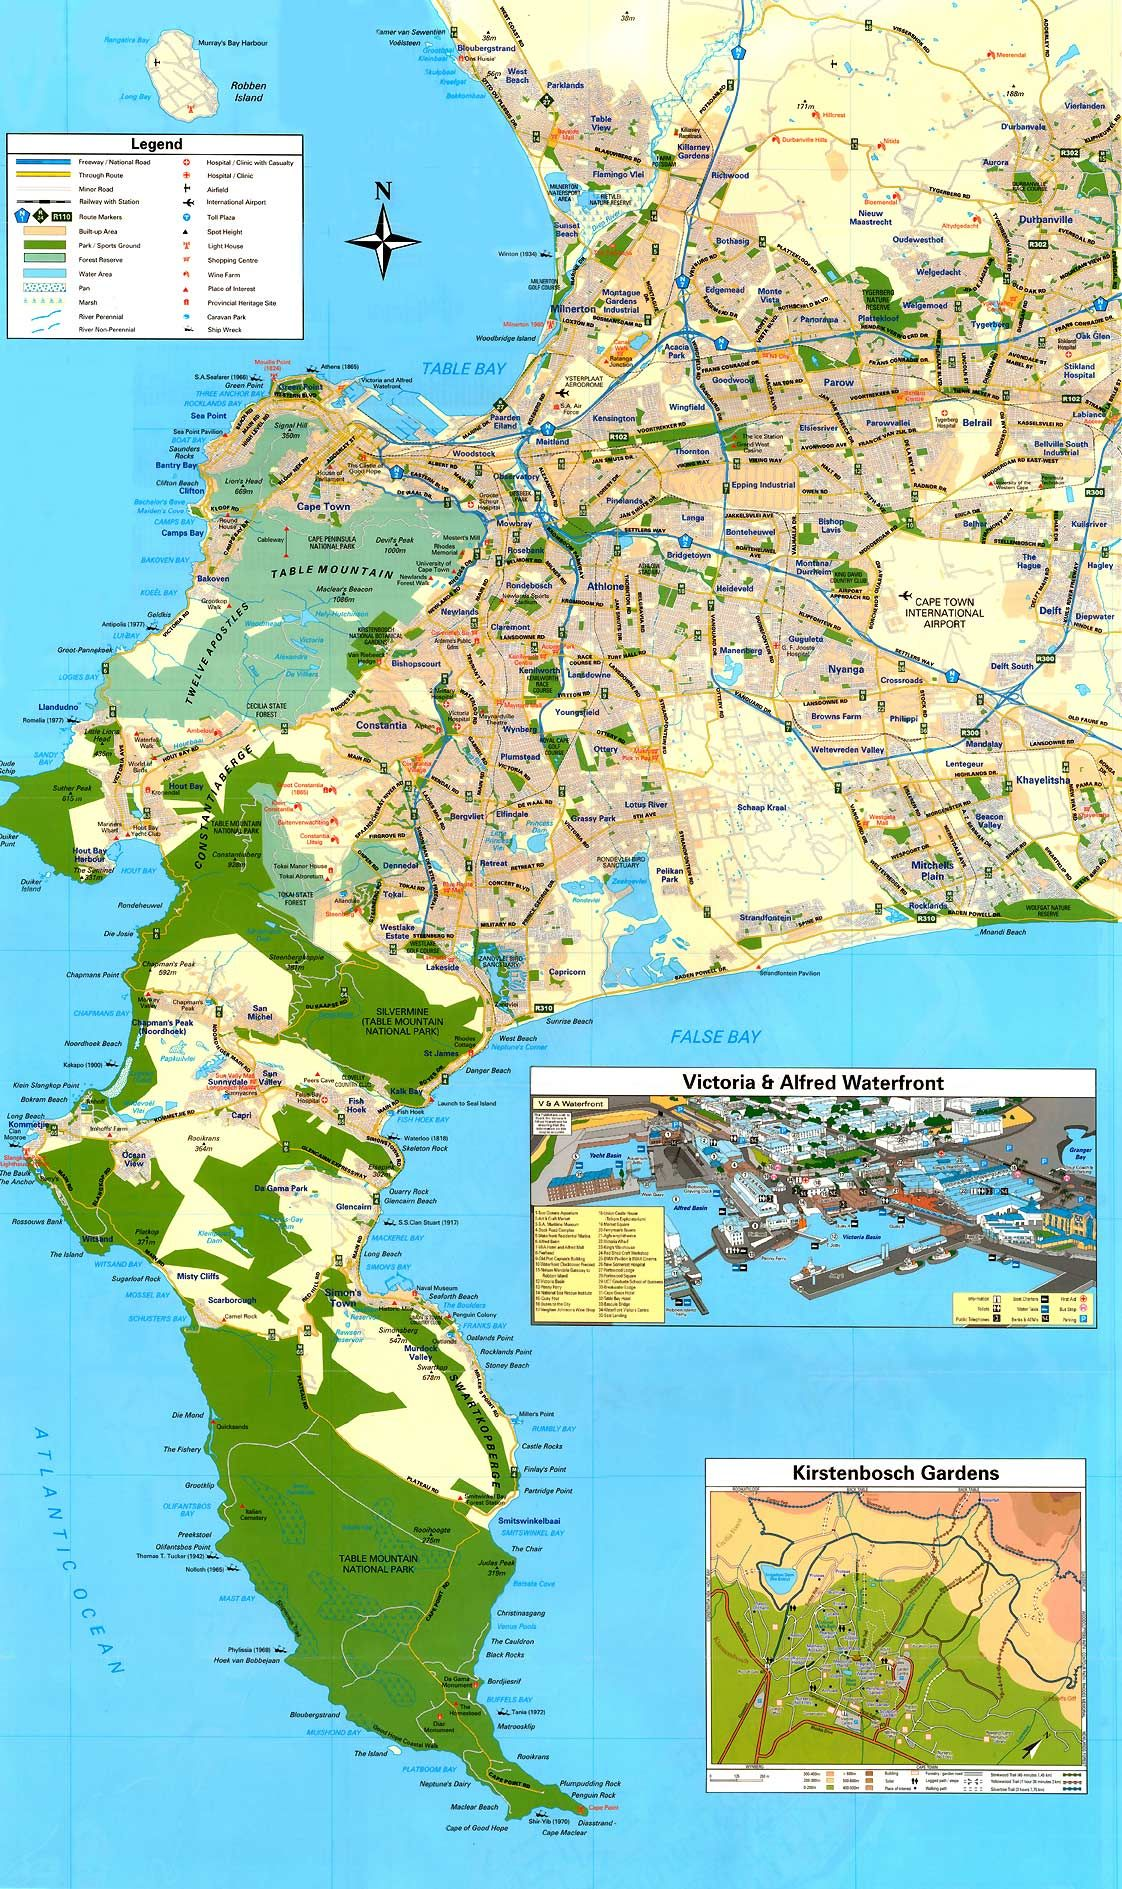 map of cape town south africa - Google Search | Hotel in Capetown ...